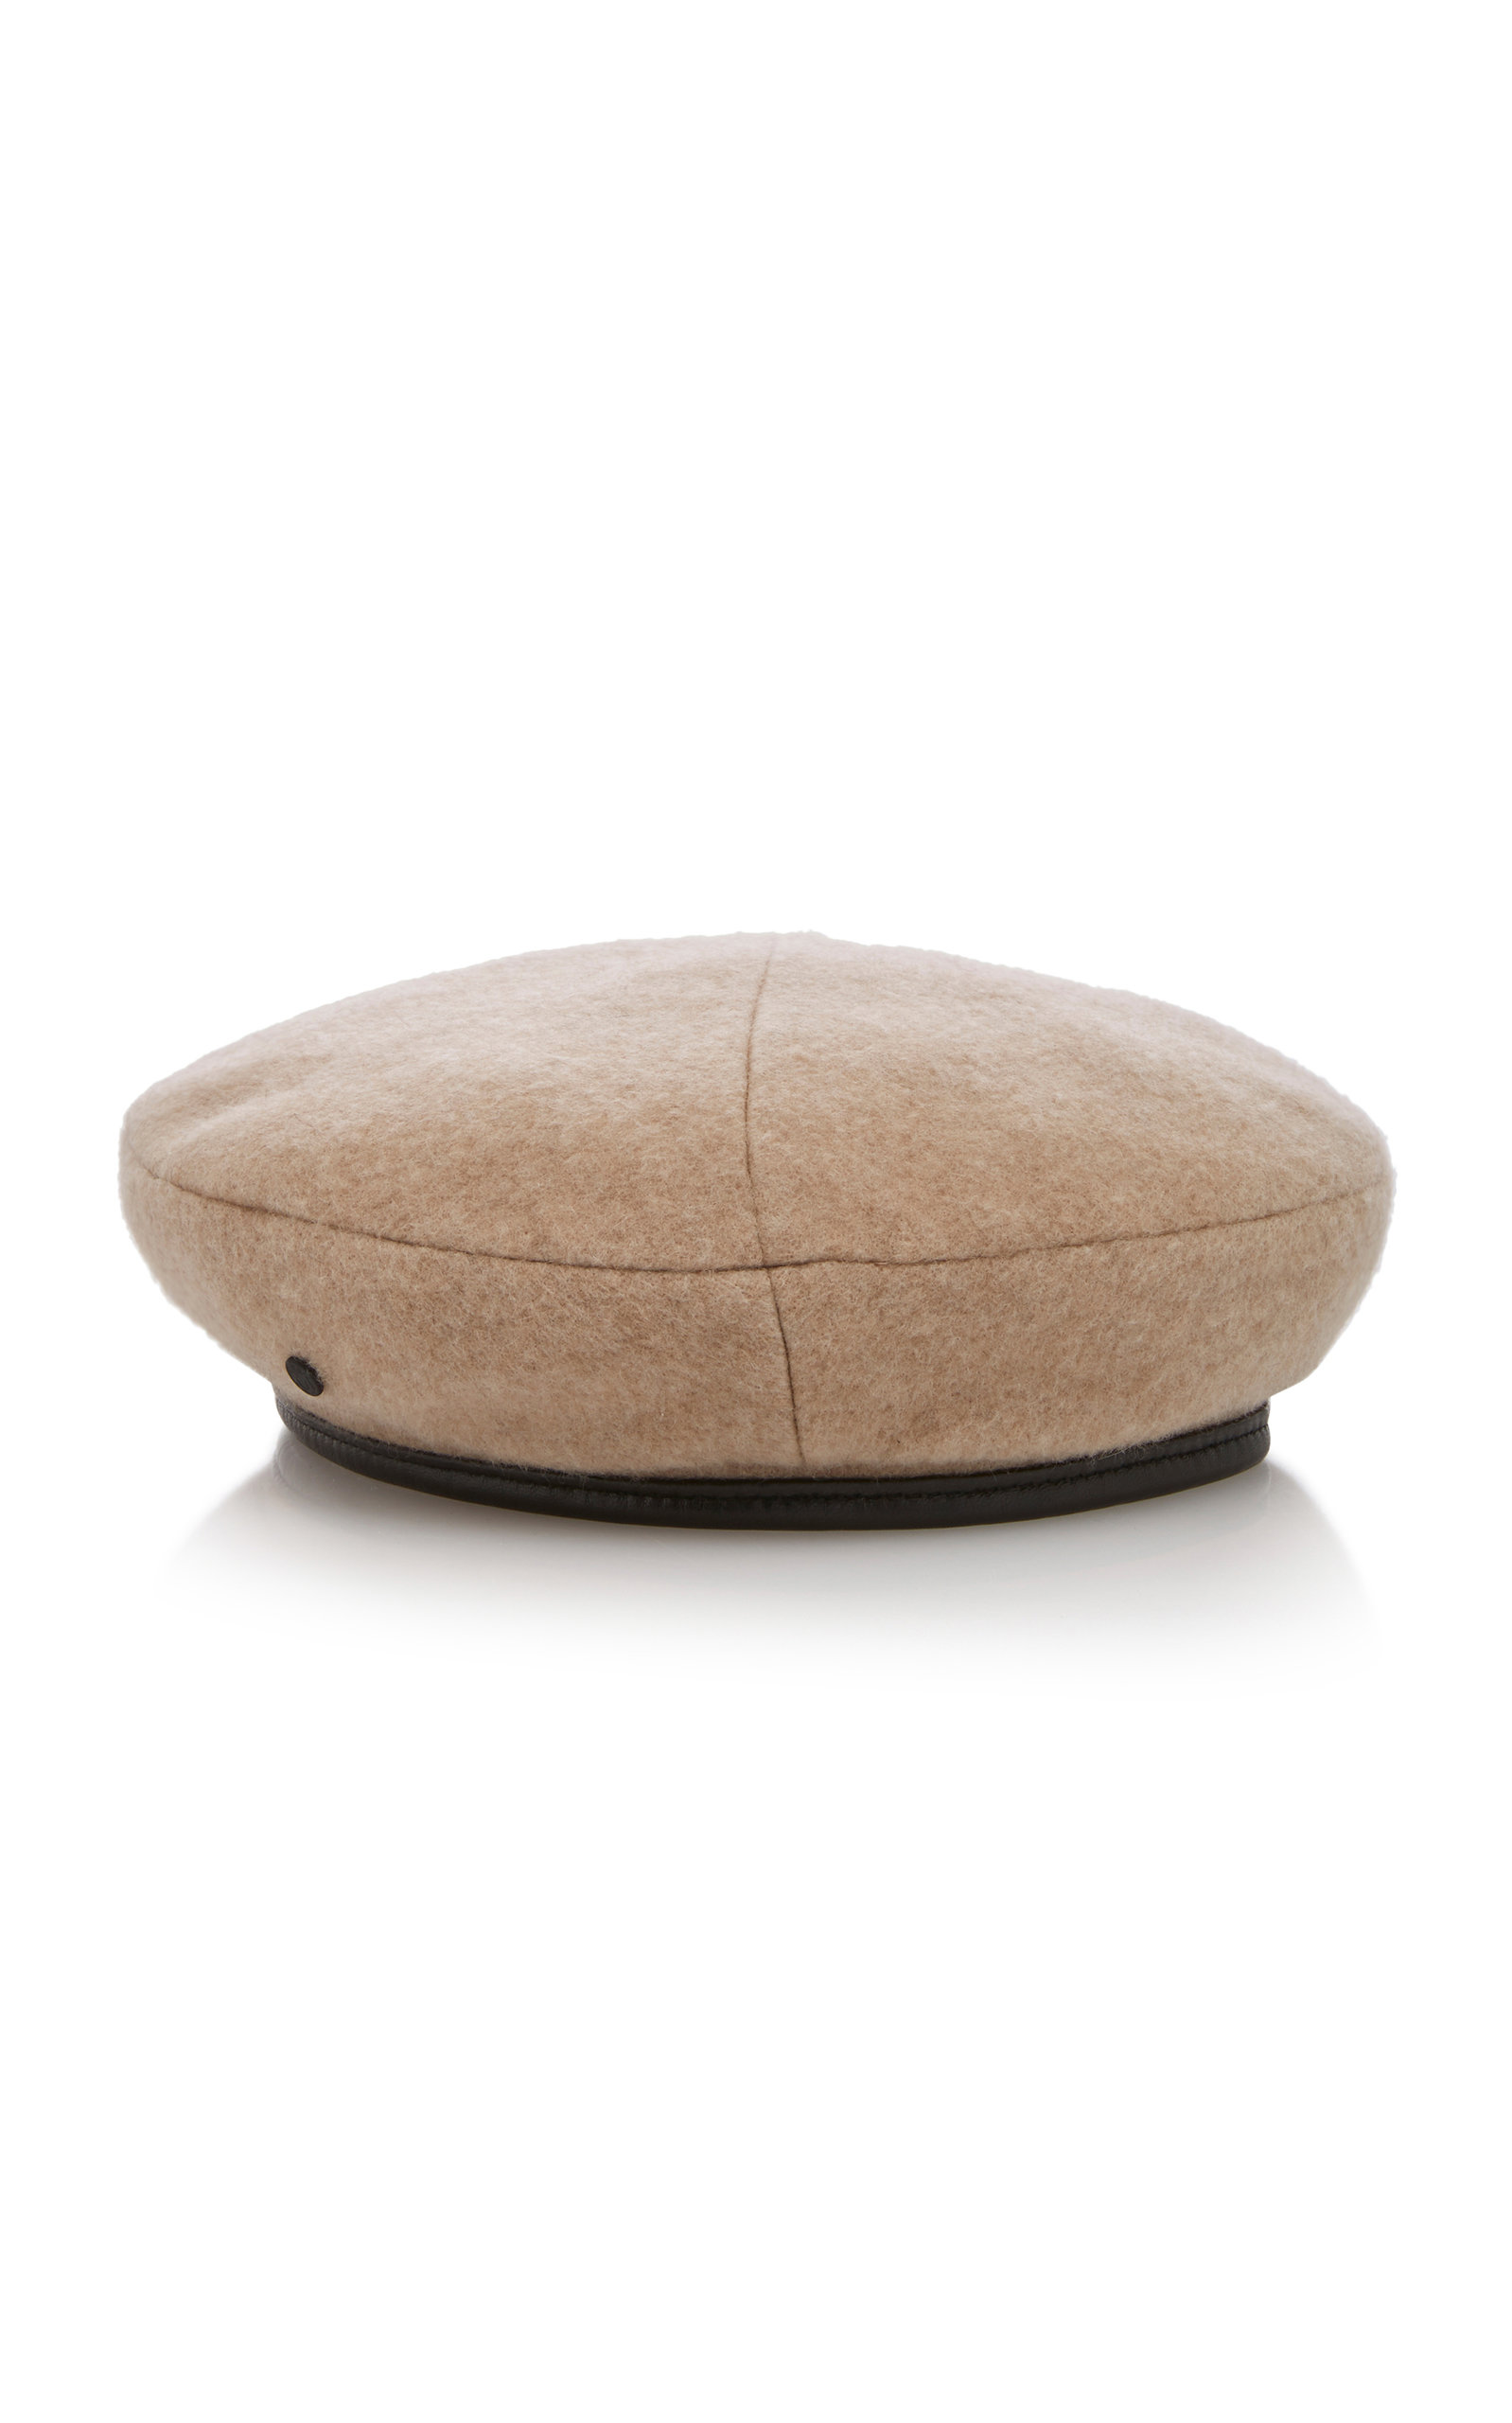 Maison Michel Hats New Billy Cashmere Beret